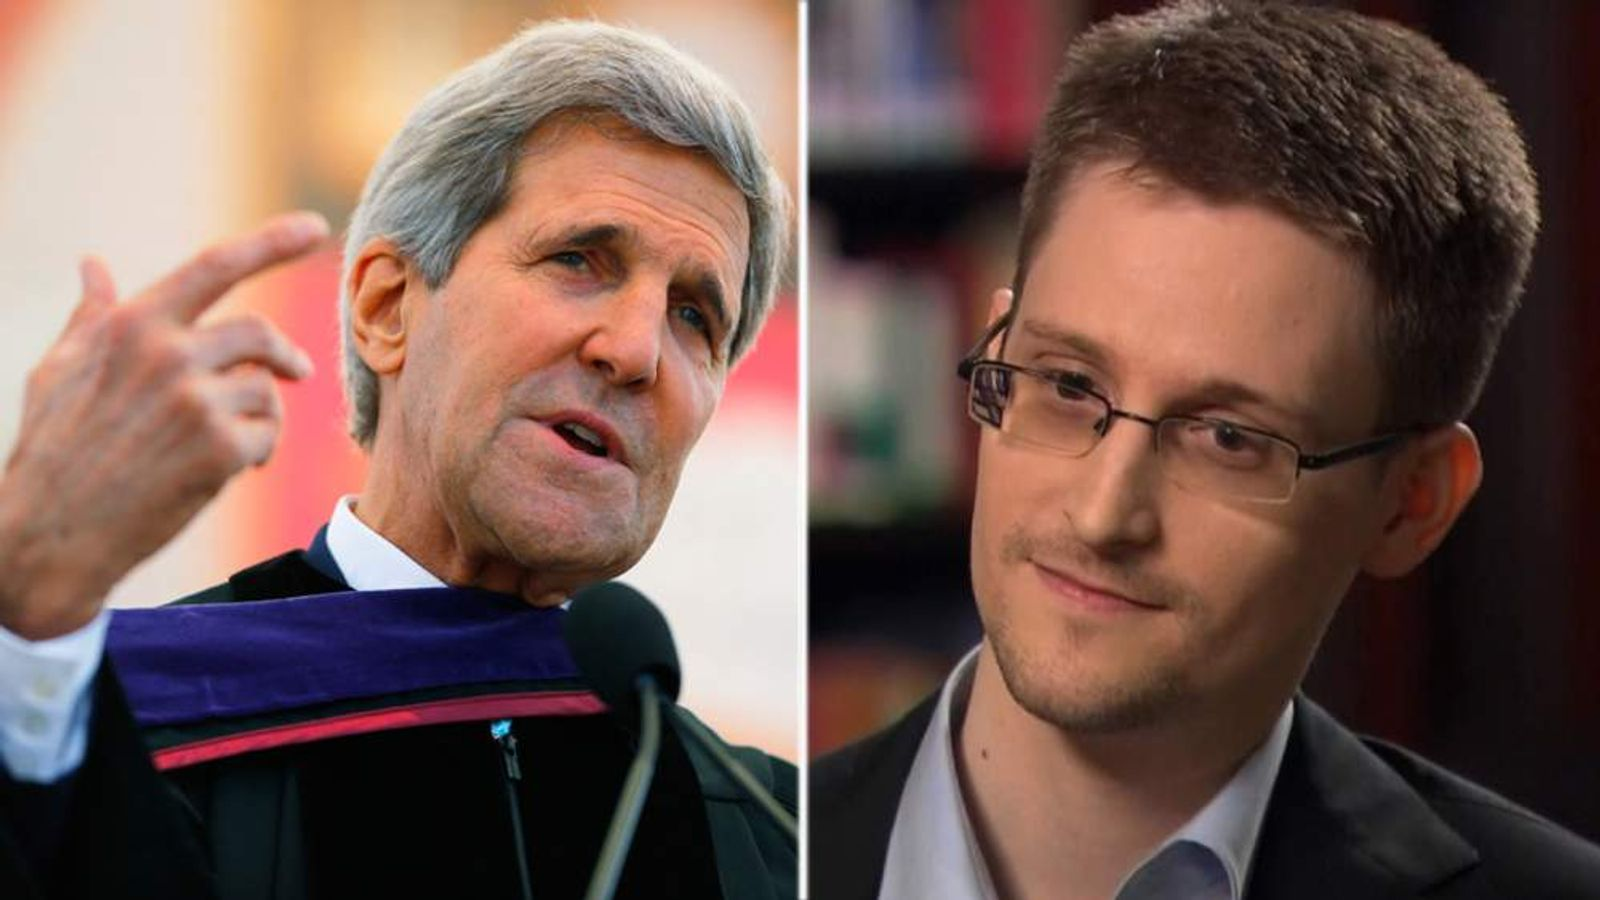 John Kerry and Edward Snowden